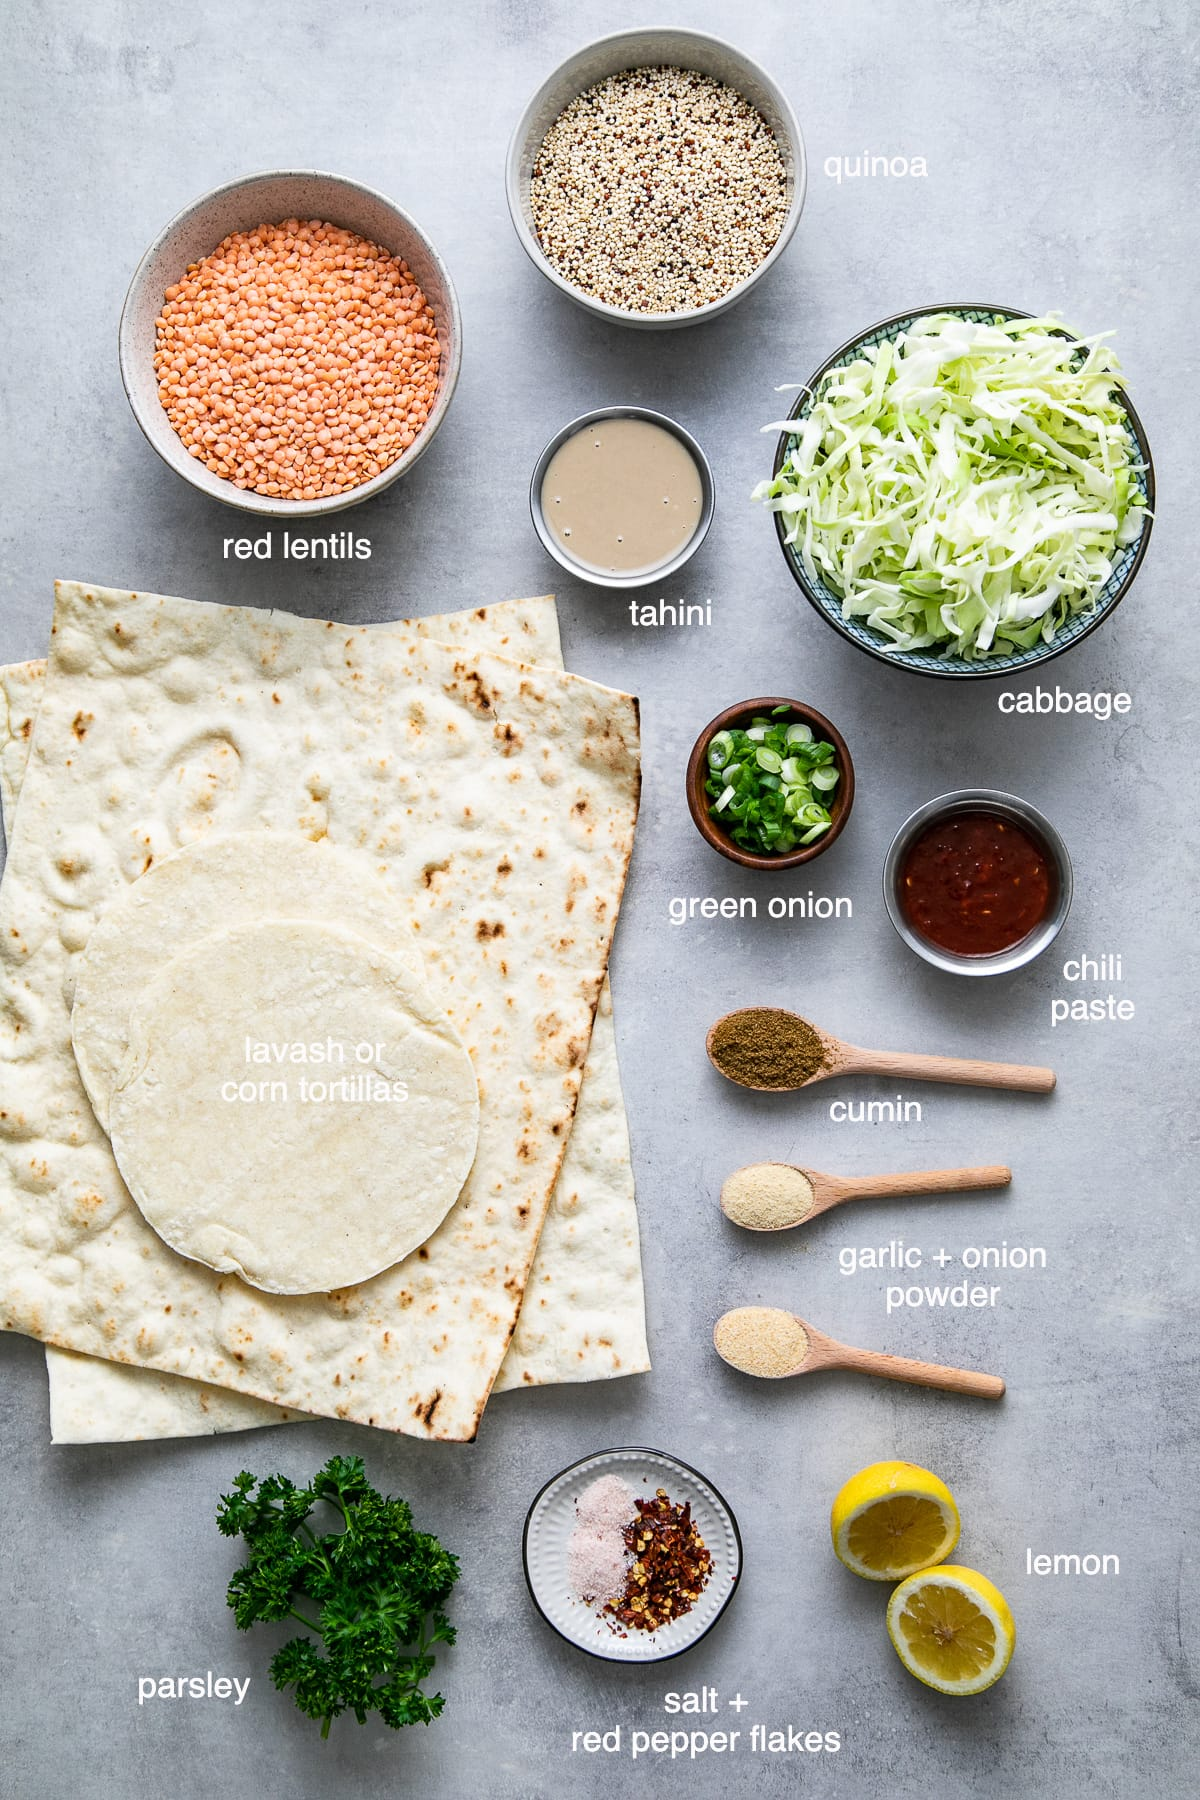 top down view of ingredients used to make spicy quinoa lentil wraps.